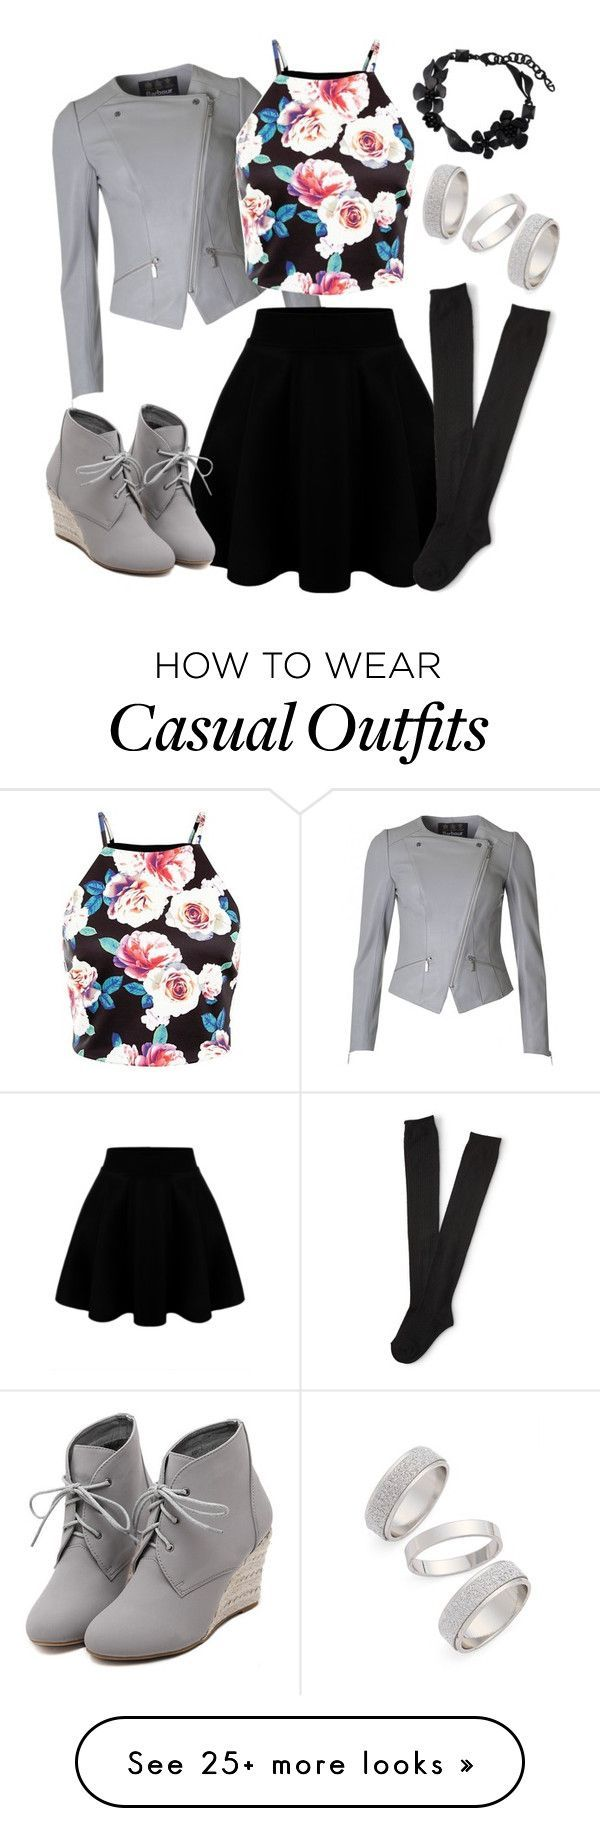 """Kaela's Casual Floral Outfit"" by rileyadewitt on Polyvore featuring Barbour, Aéropostale, WithChic, Valentino, Topshop, women's clothing, women, female, woman and misses - online shop womens clothing, womens fasion clothing, on sale womens clothing"